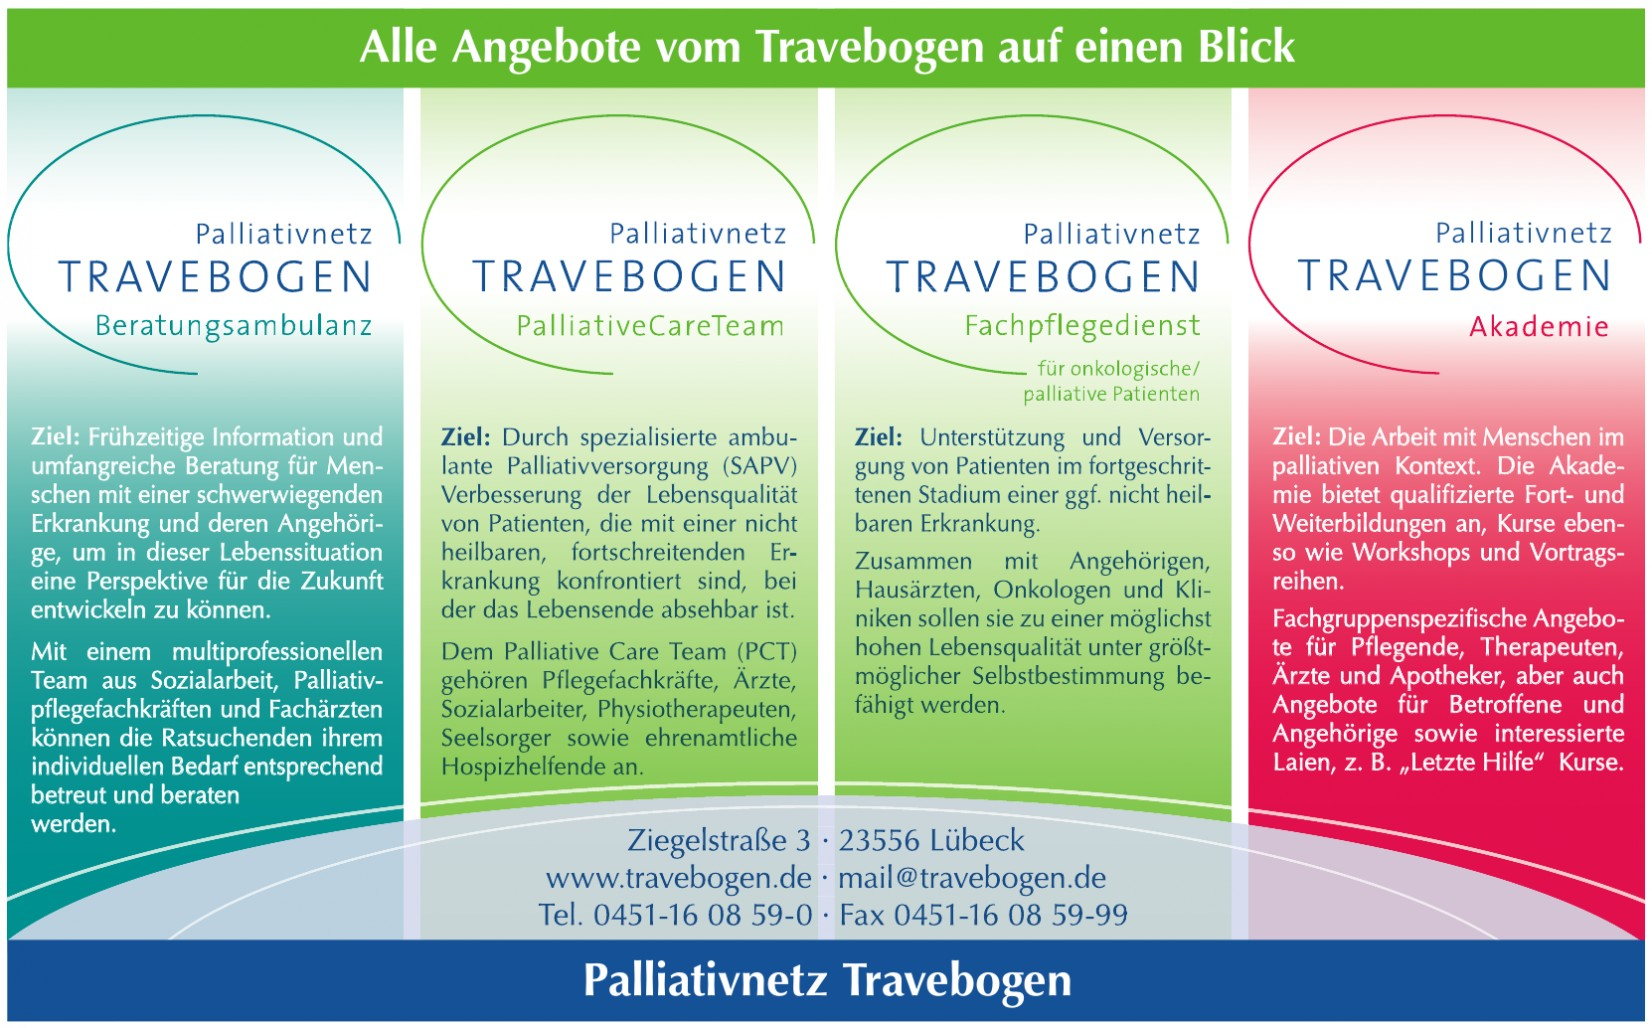 Palliativnetz Travebogen